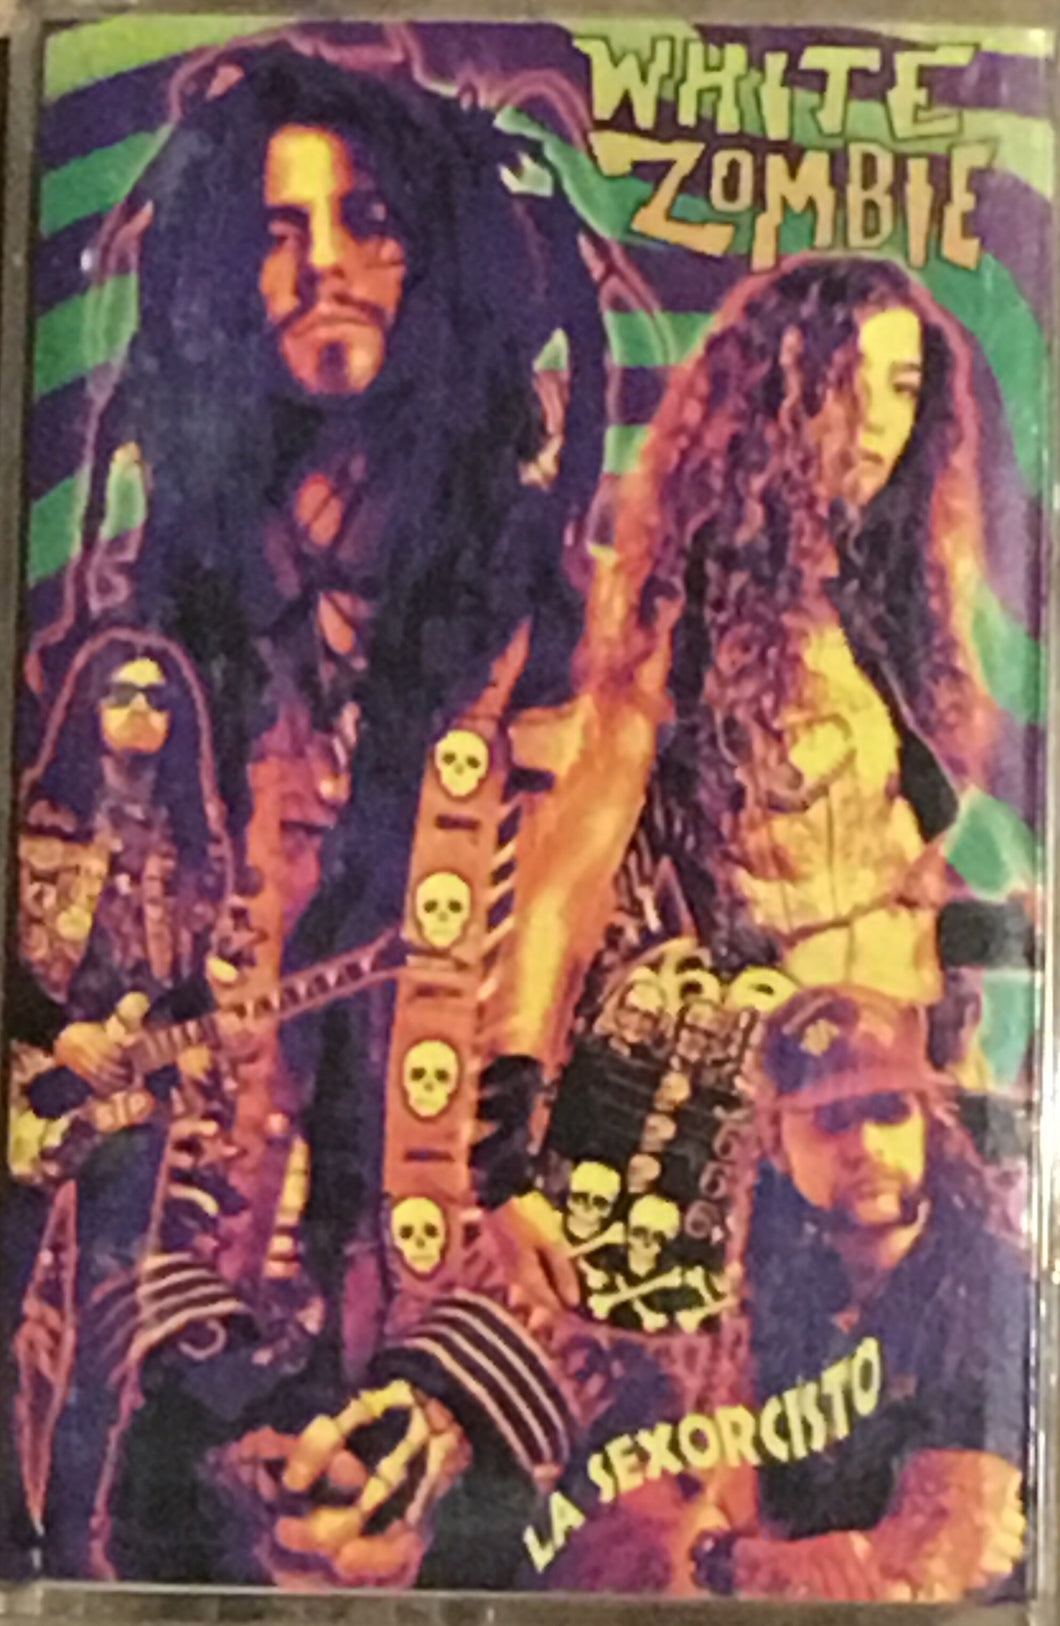 White Zombie La Sexorcisto devil music vol 1 cassette